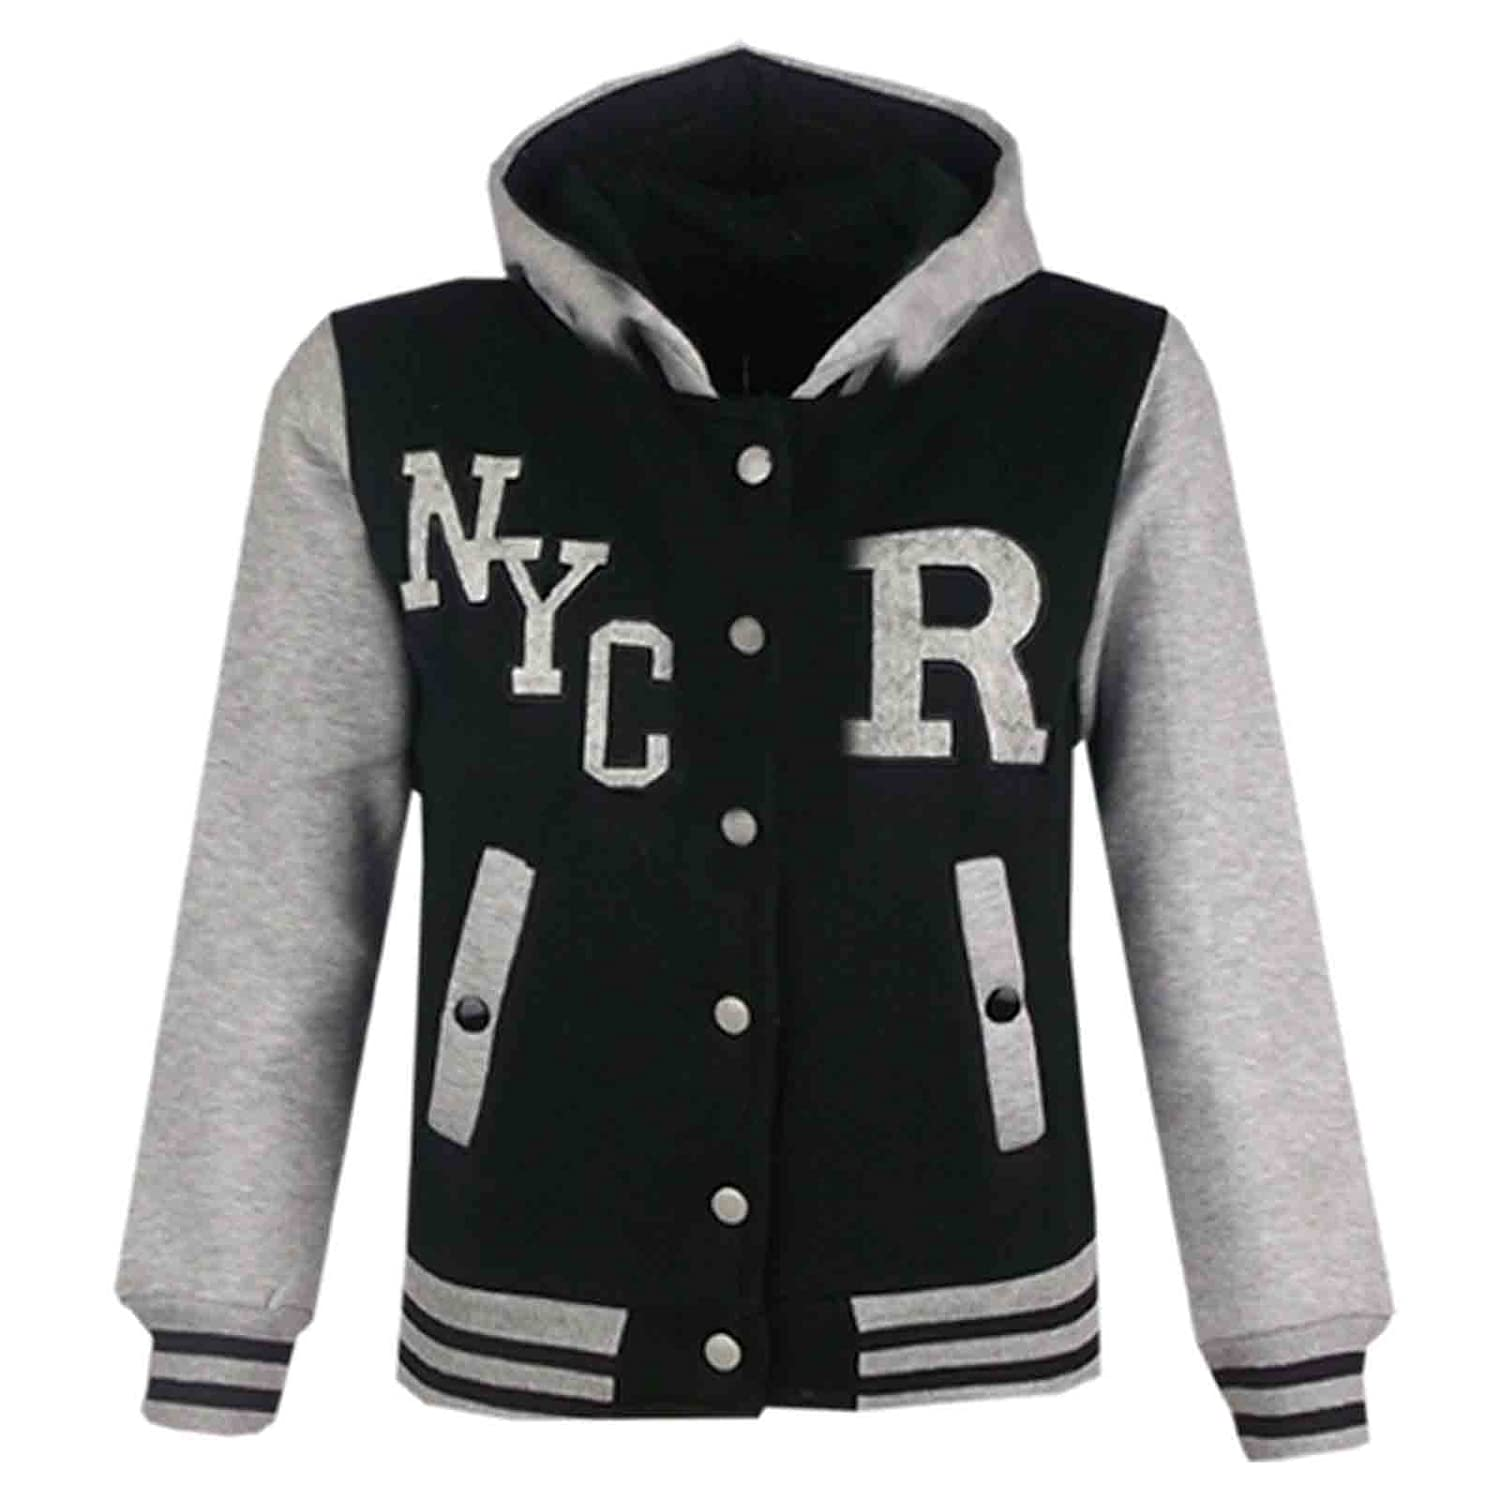 A2Z 4 Kids Kids Girls Boys R Fashion NYC FOX Baseball Hooded Jacket Varsity Hoodie